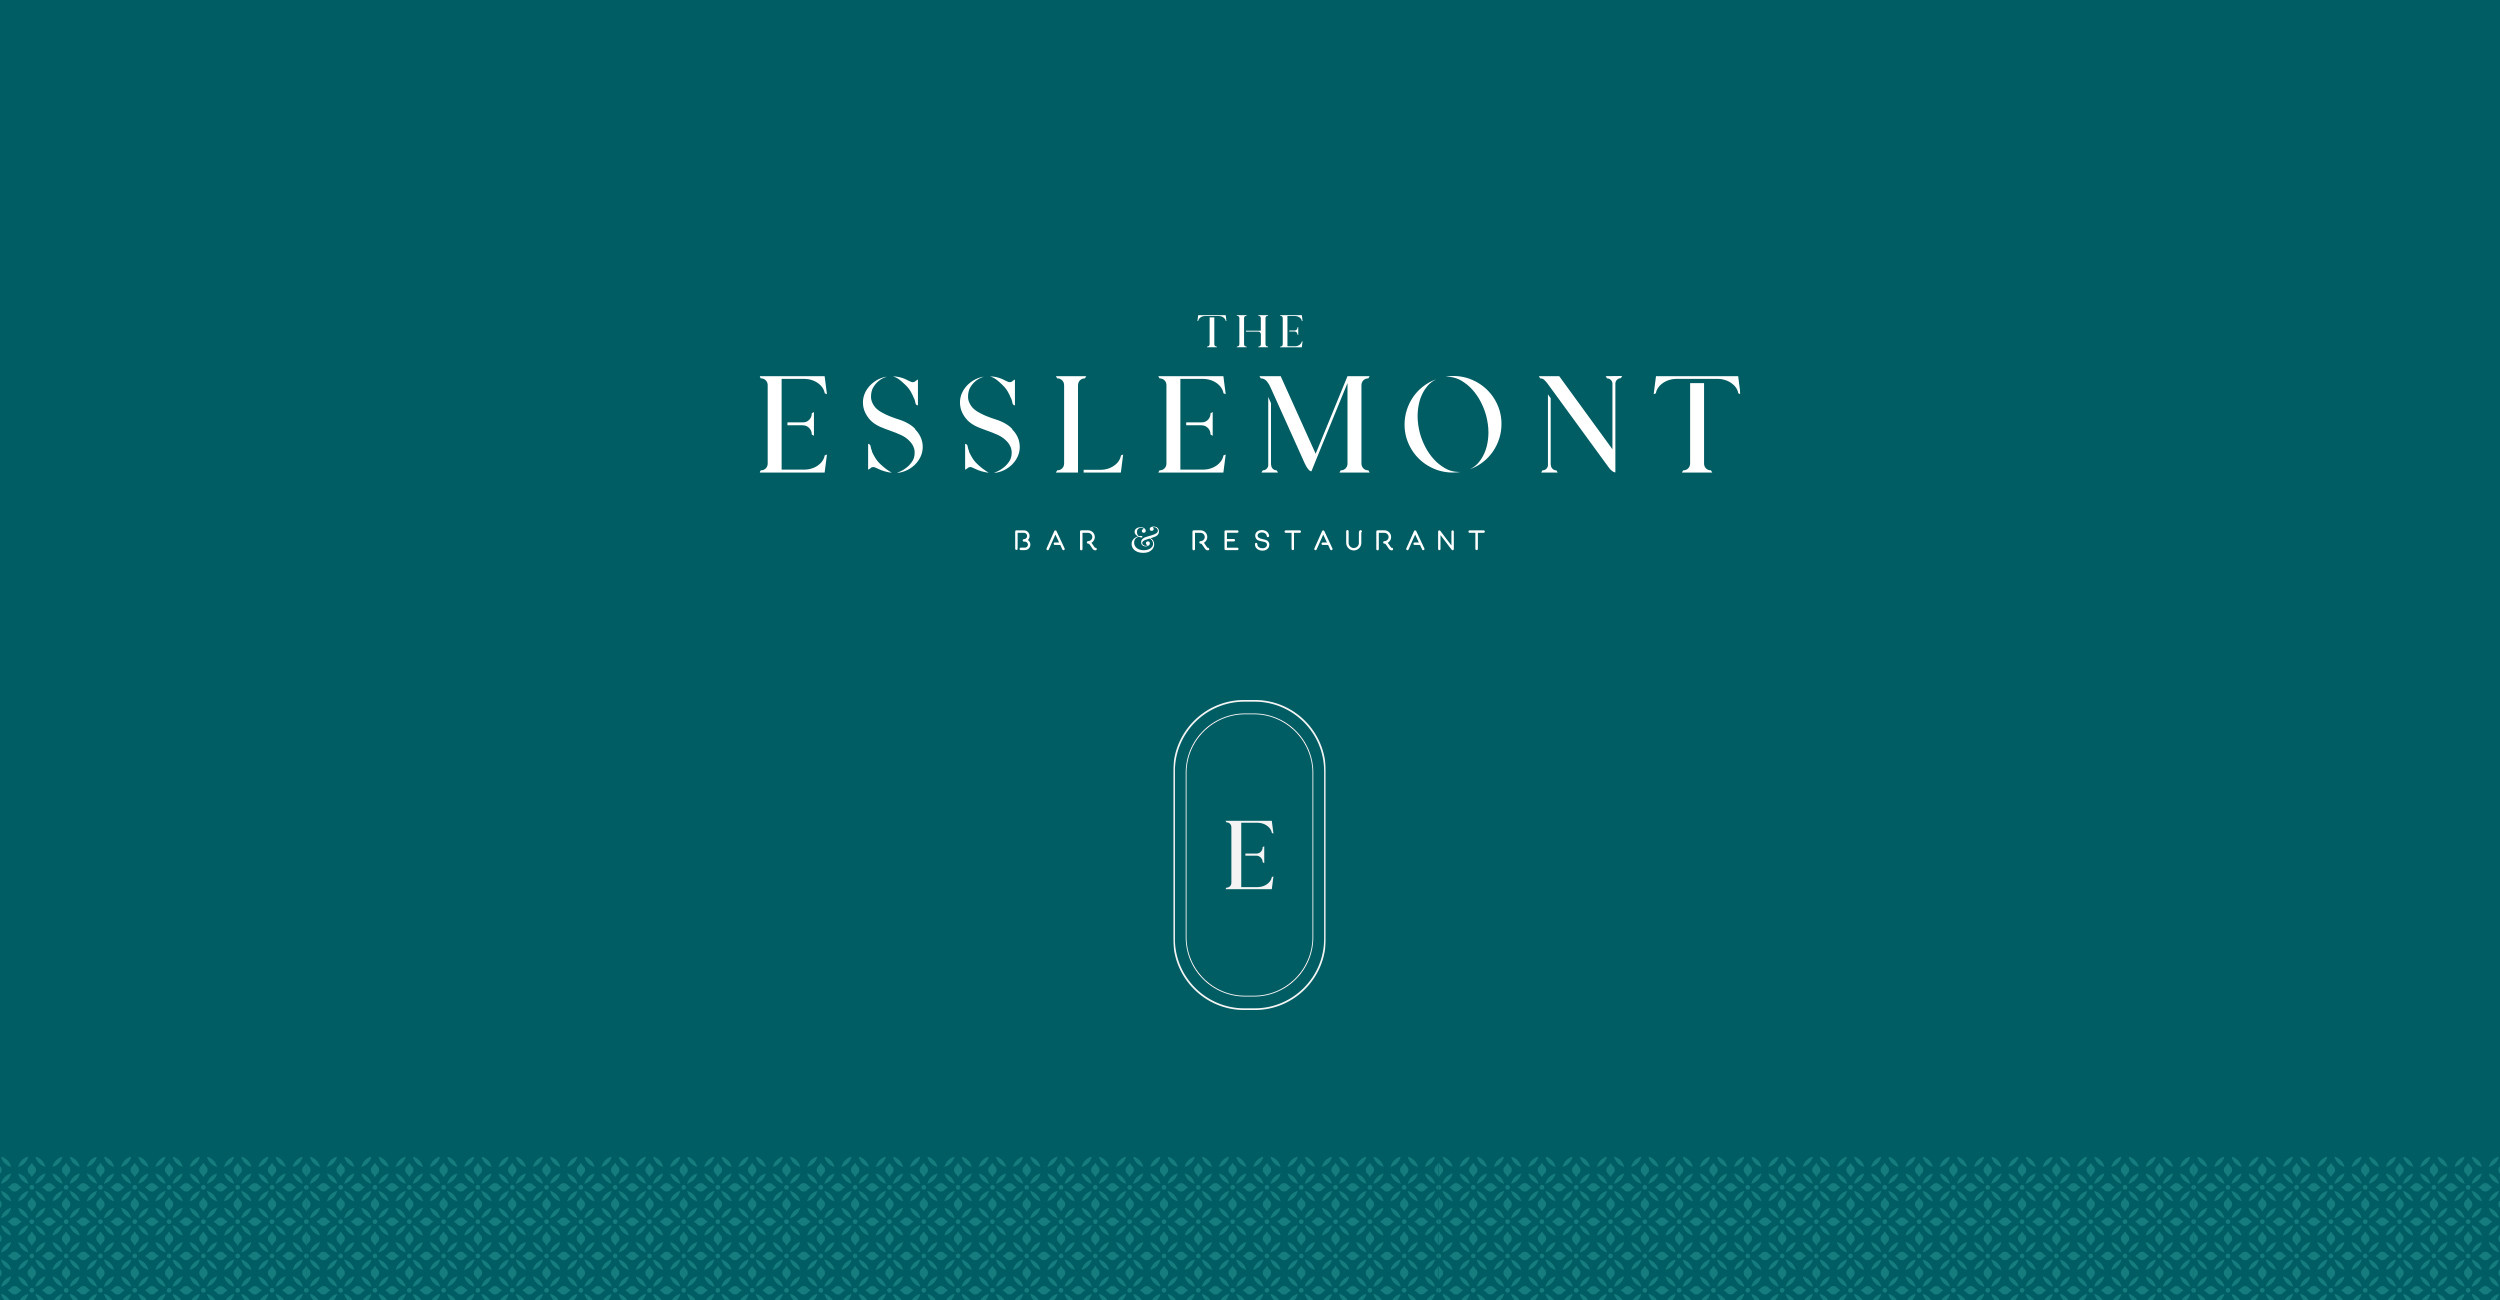 The Esslemont